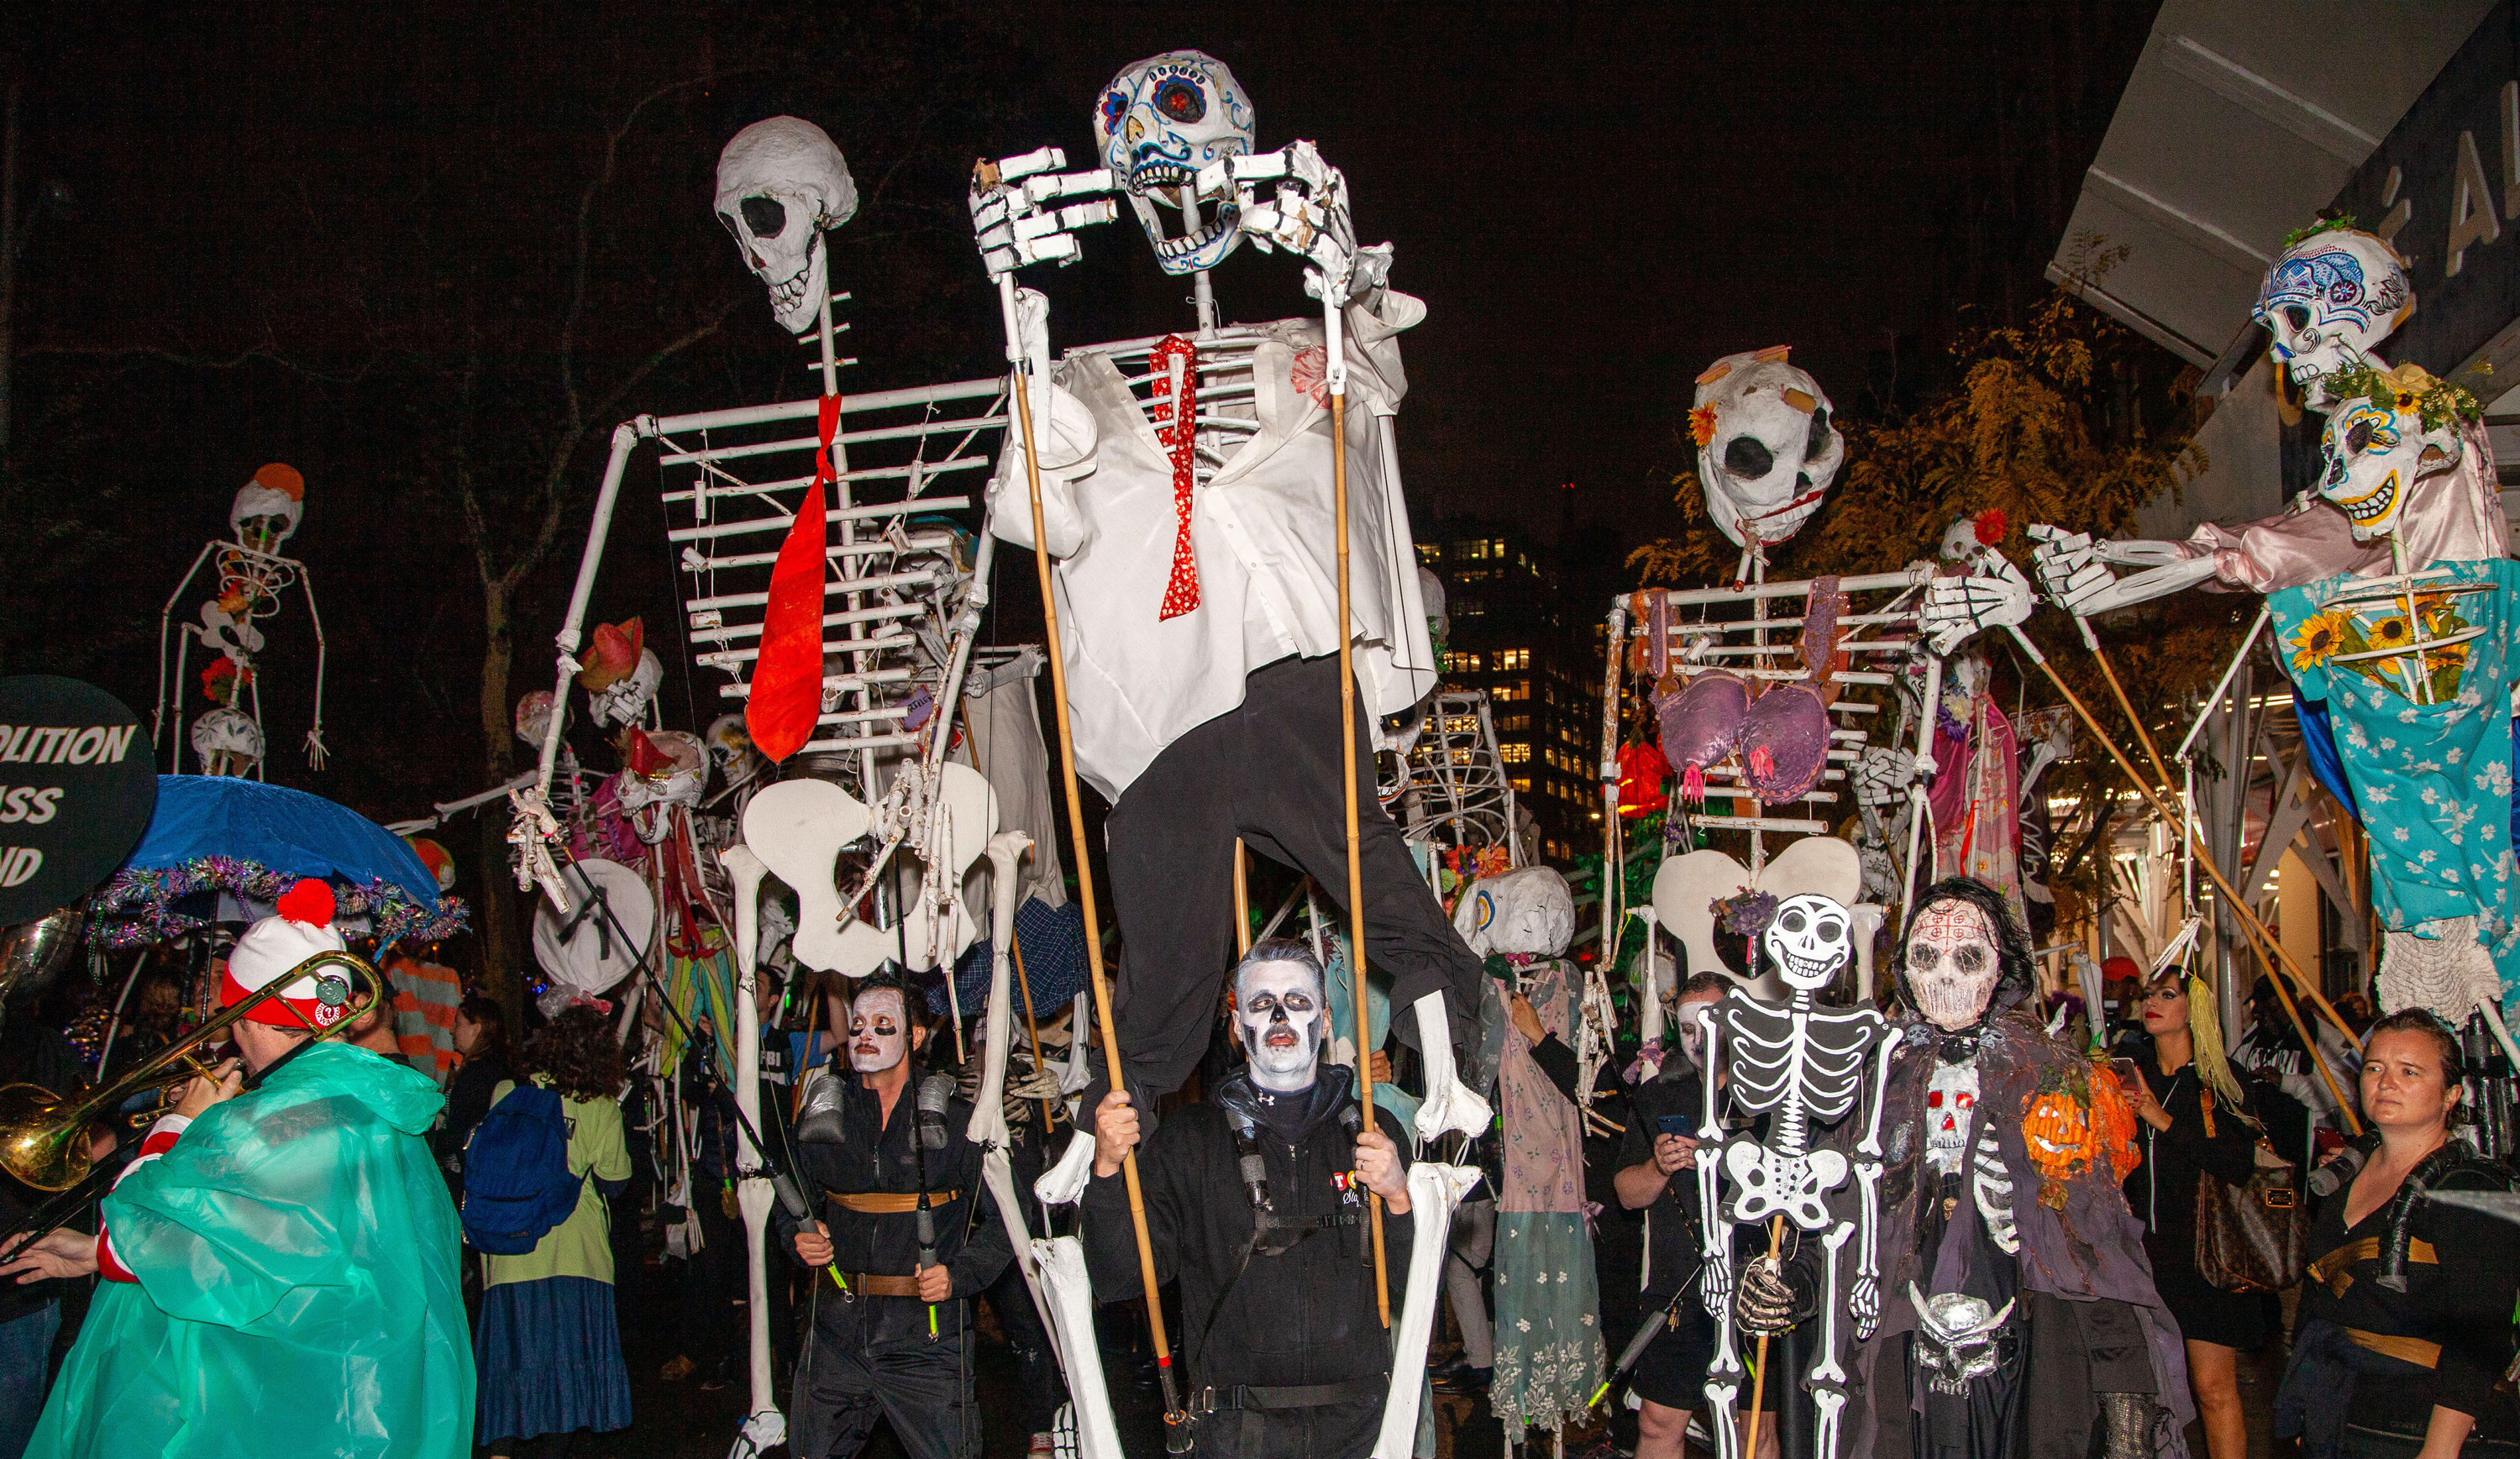 Village Halloween Parade in NYC 2020 guide